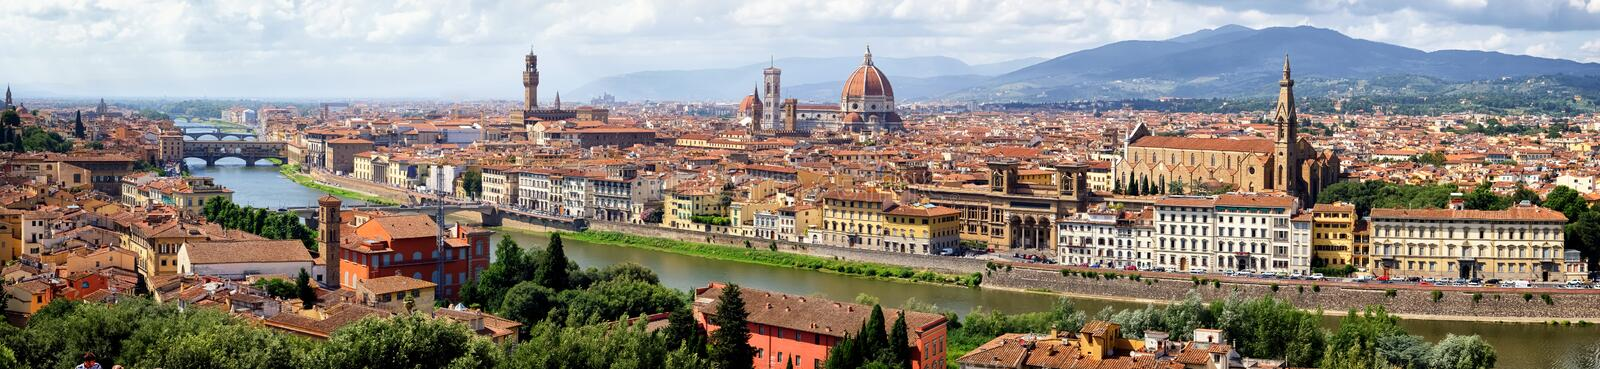 Florence - Firenze - l'Italie images stock